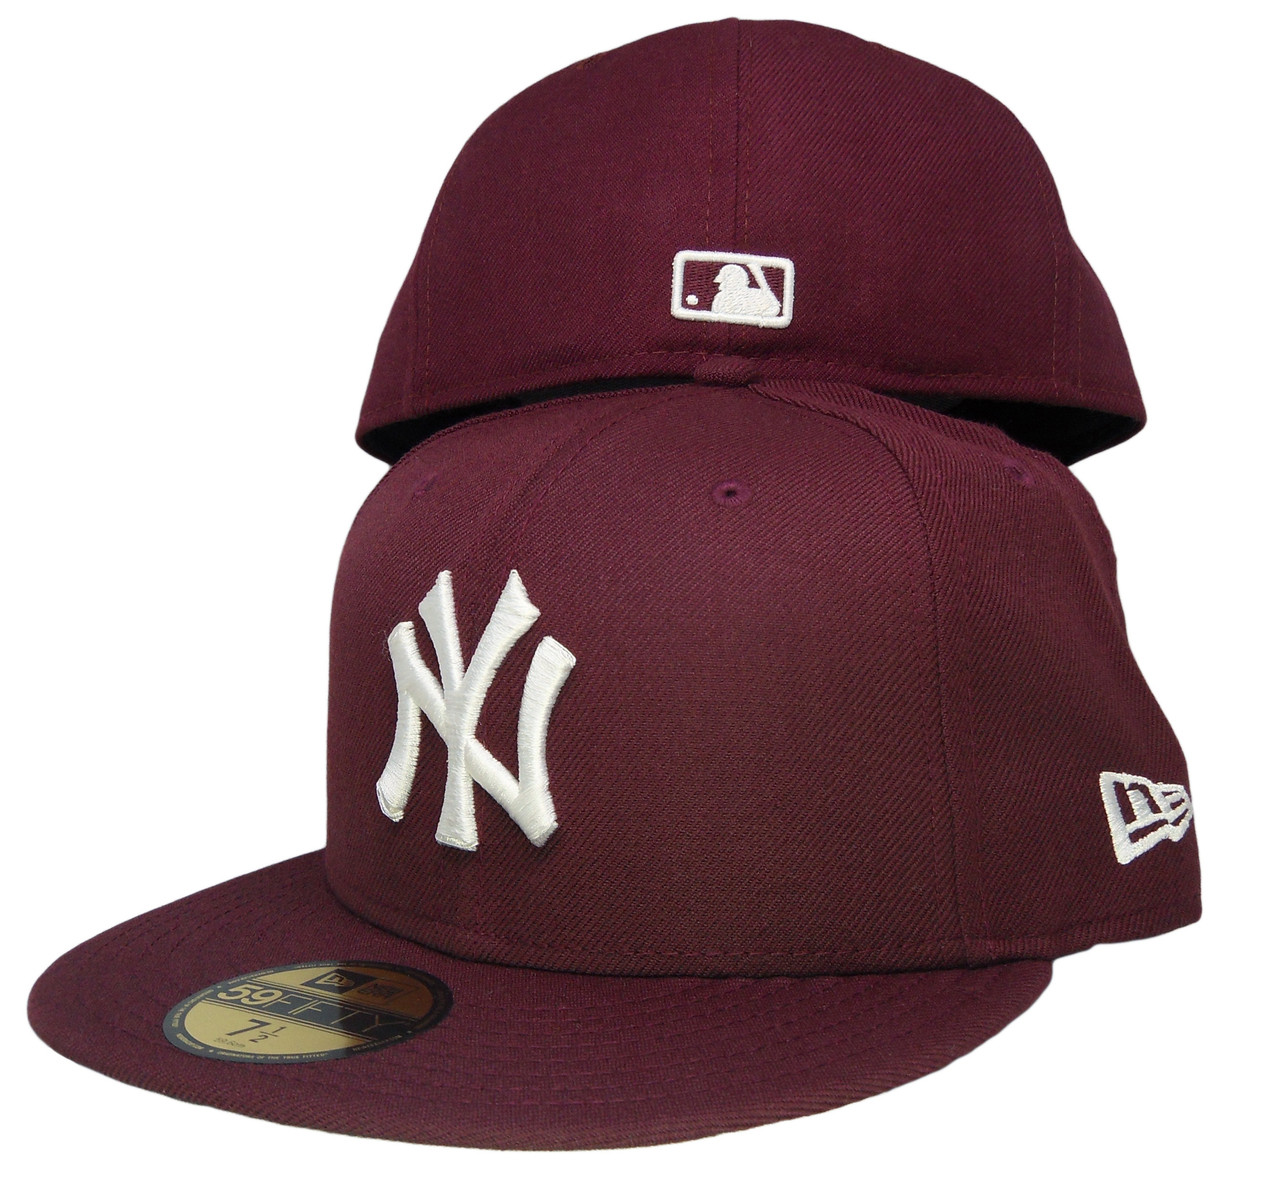 New York Yankees New Era 59Fifty Basic Fitted Hat - Maroon 6cc0eeb3441